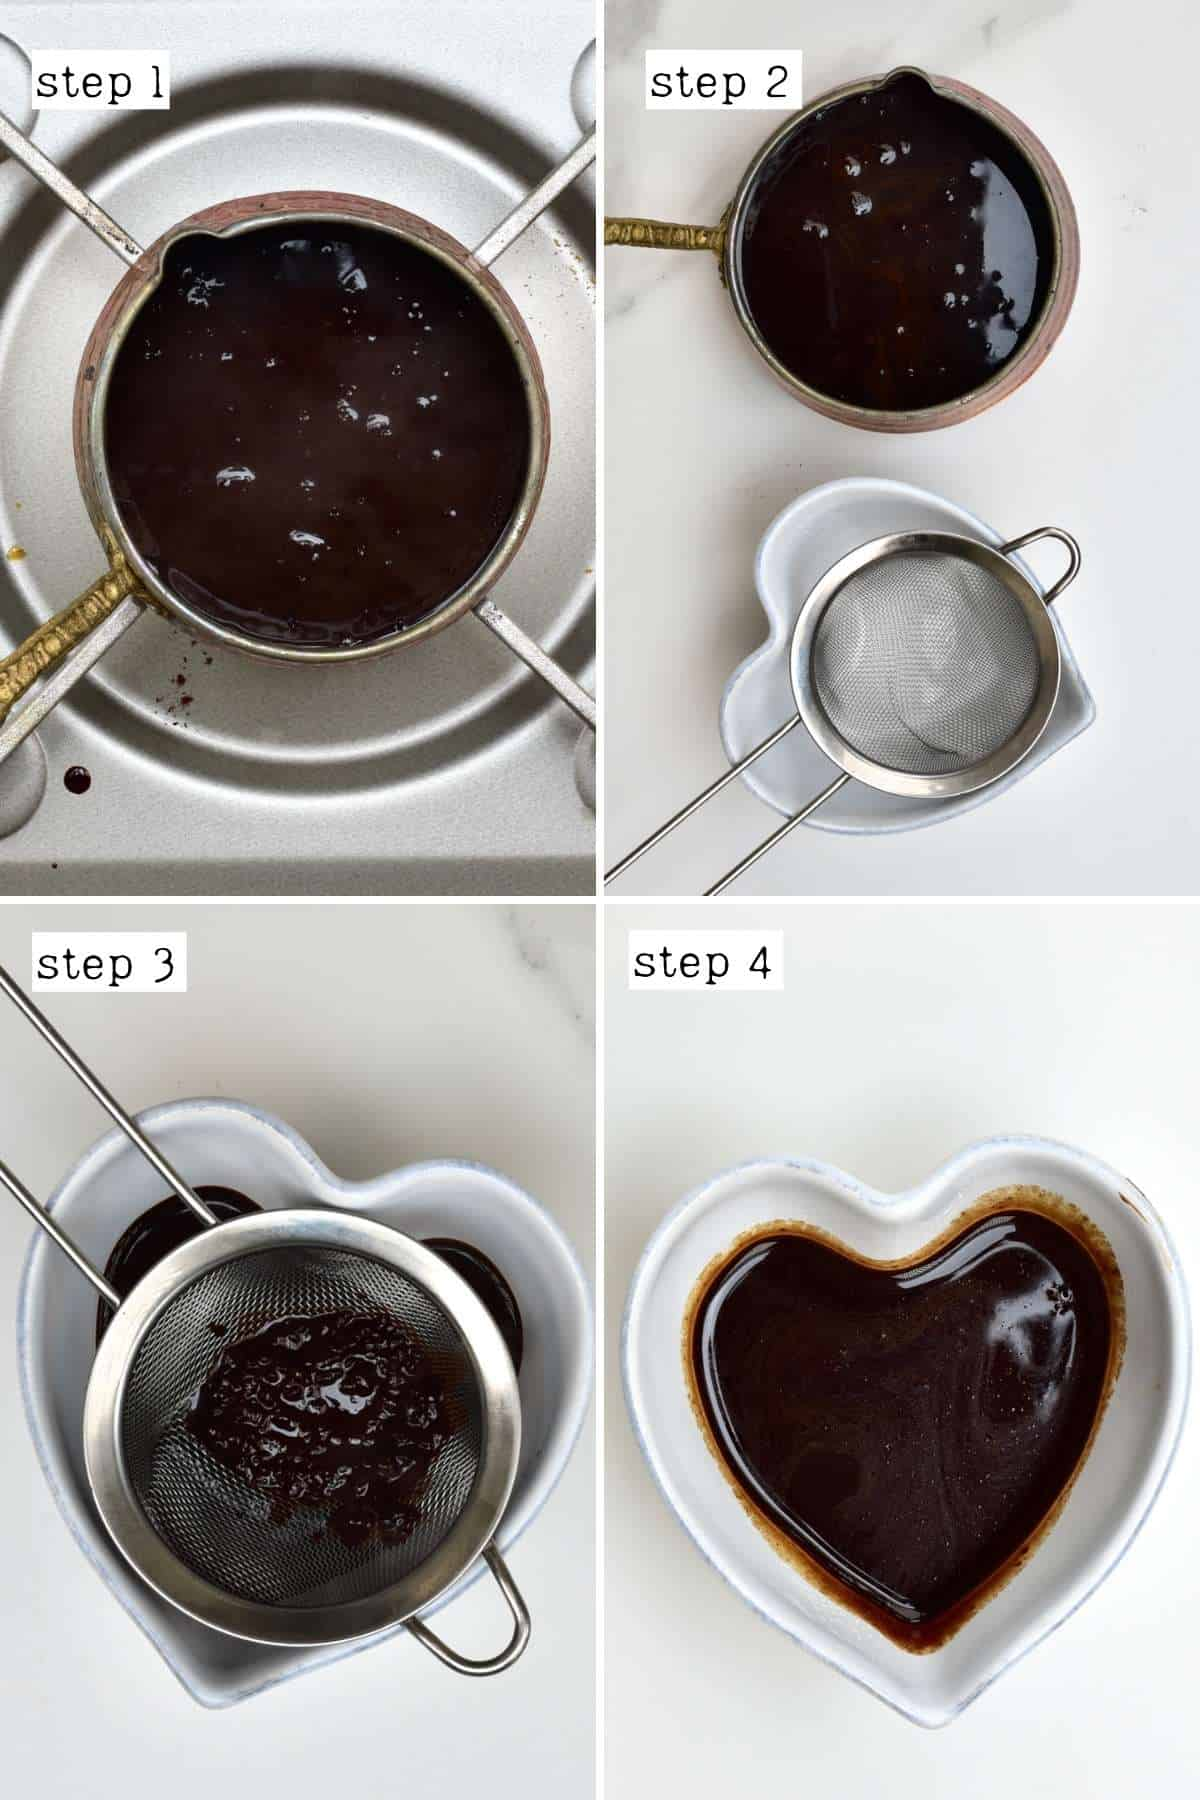 Steps for preparing coffee for ice cream